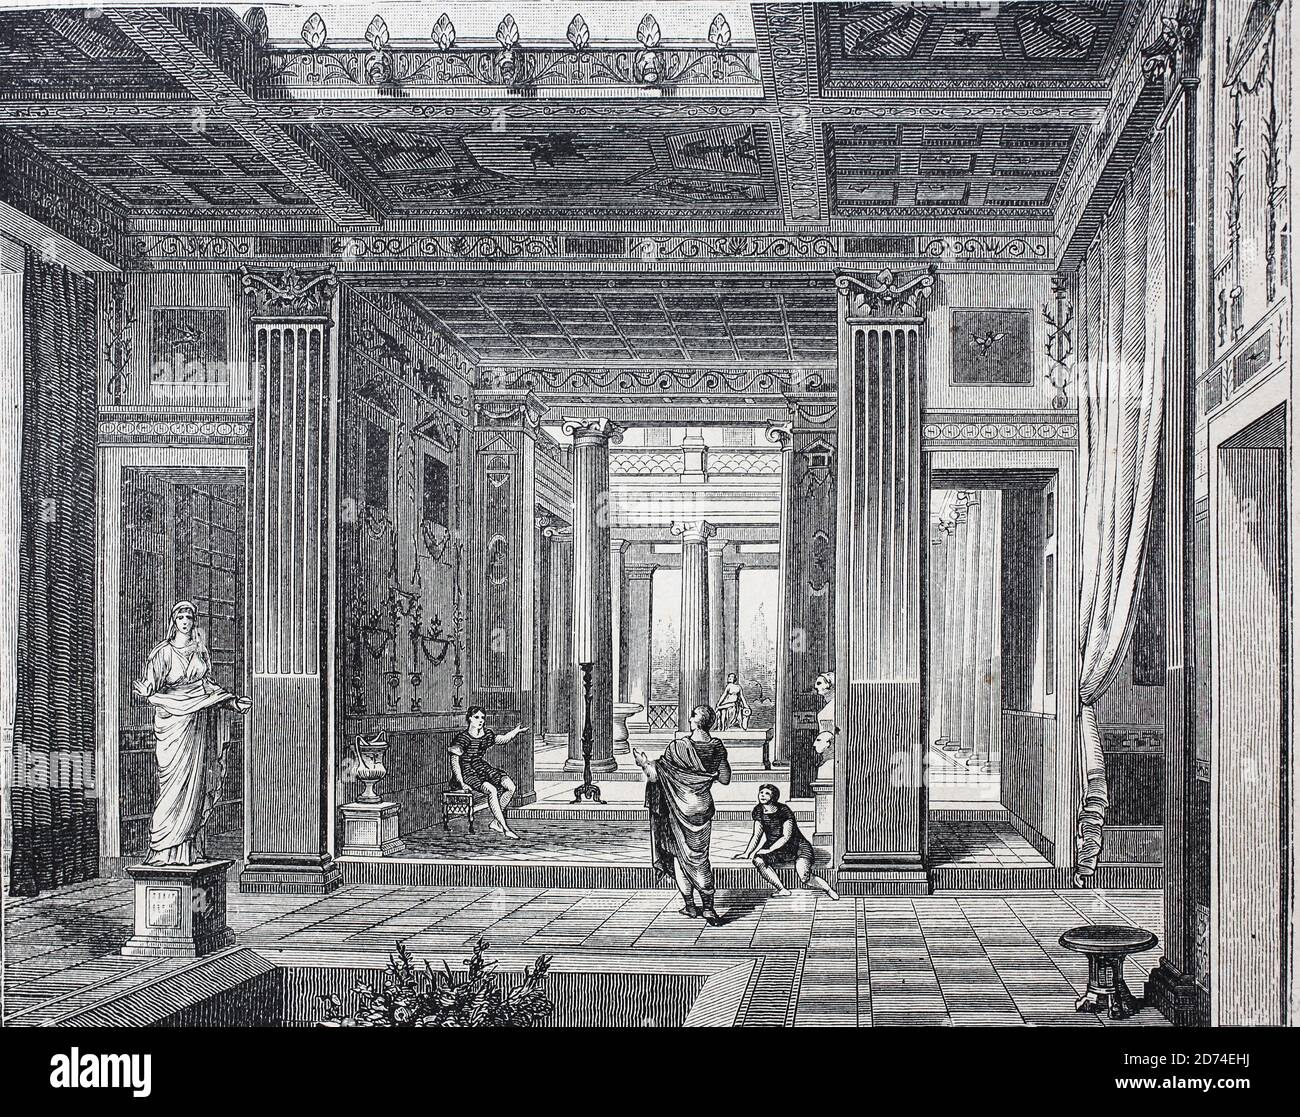 Roman house in the Middle Ages, Rome, Italy  /  Römisches Wohnhaus im Mittelalter, Rom, Italien, Historisch, historical, digital improved reproduction of an original from the 19th century / digitale Reproduktion einer Originalvorlage aus dem 19. Jahrhundert Stock Photo